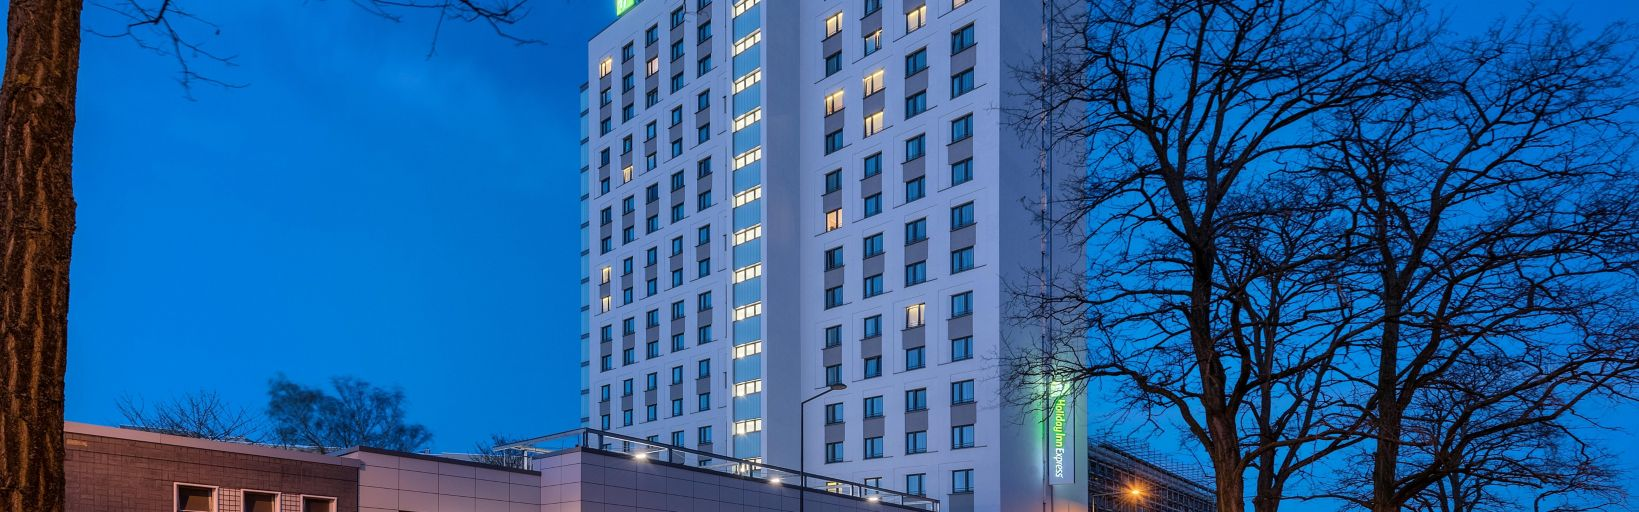 holiday inn express cologne city centre cologneのホテルを予約